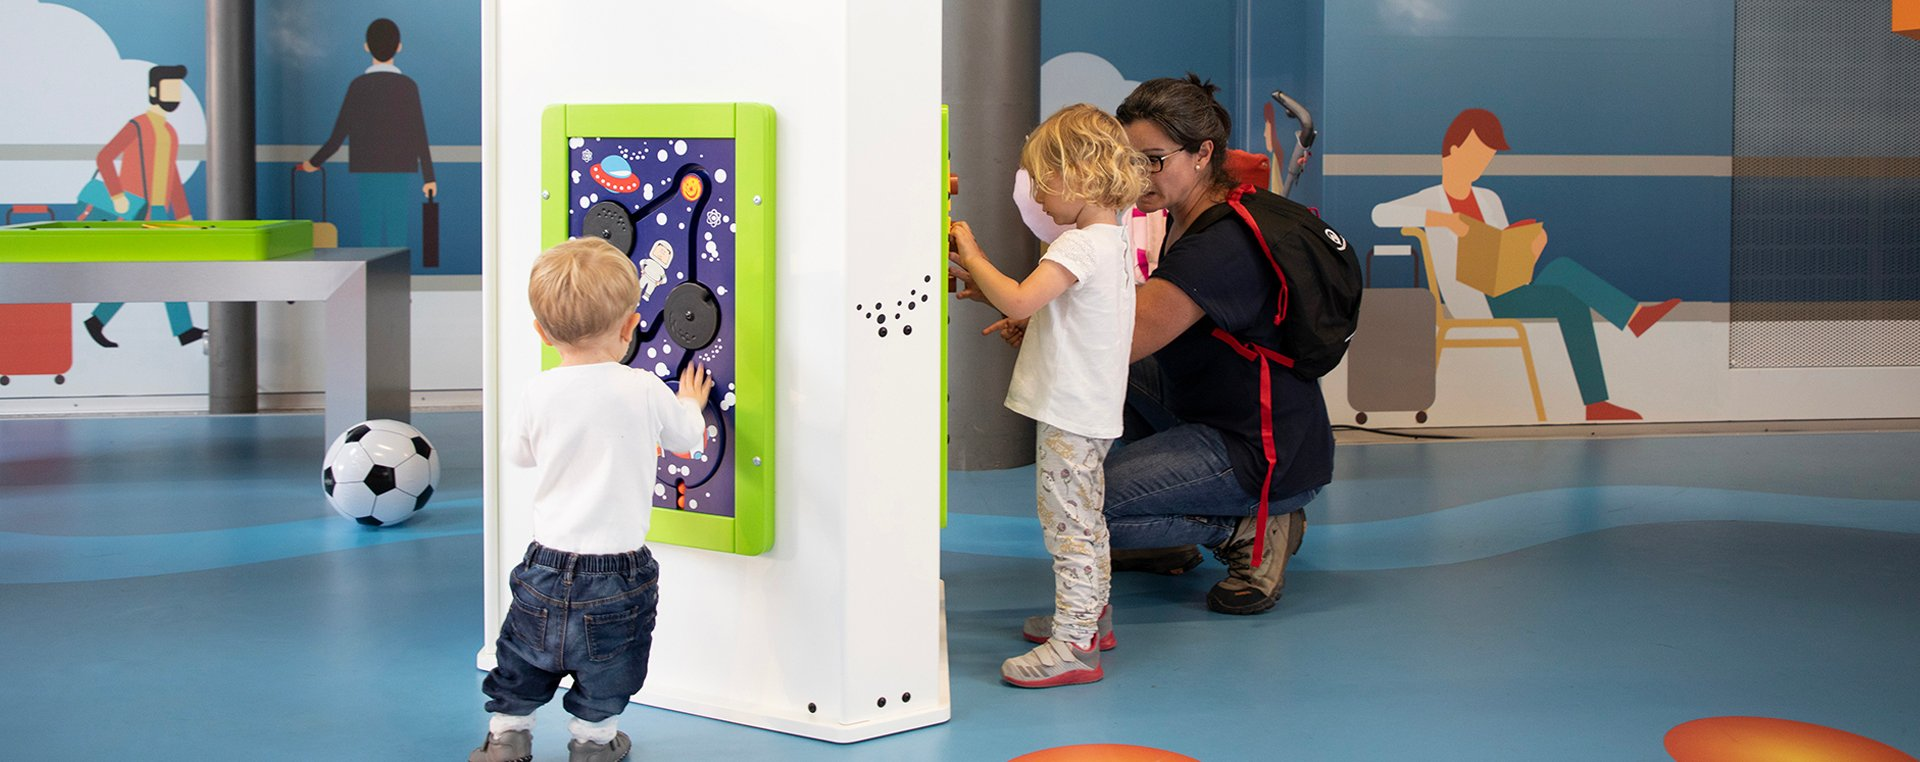 this image shows a kids corner with wall game  in an airport